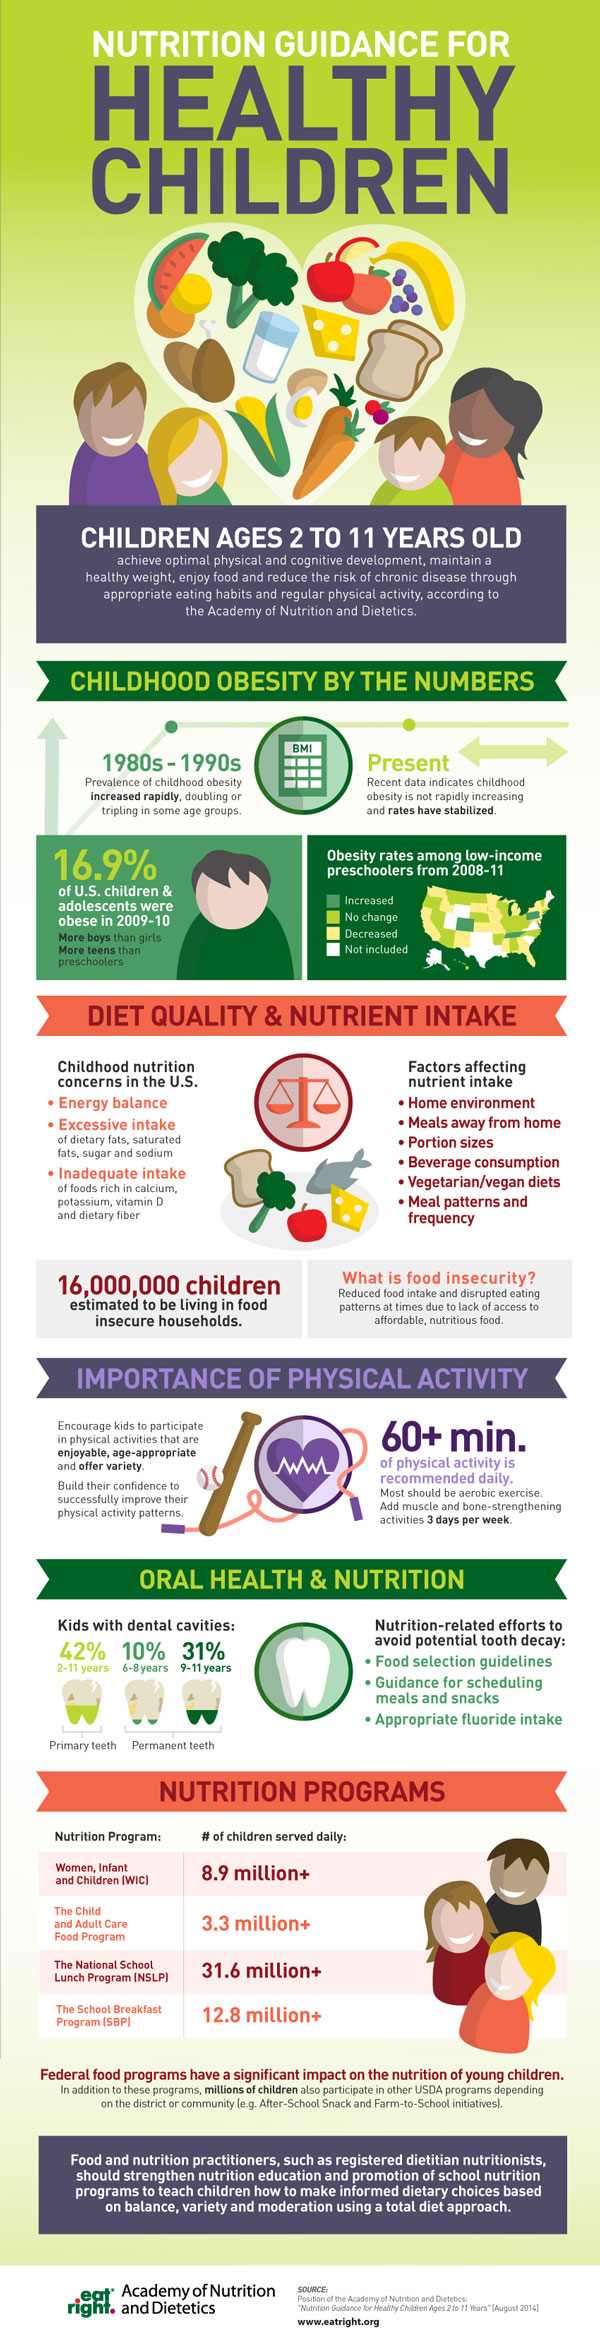 A smaller version of the Nutrition Guidance for Healthy Children Ages 2 to 11 infographic